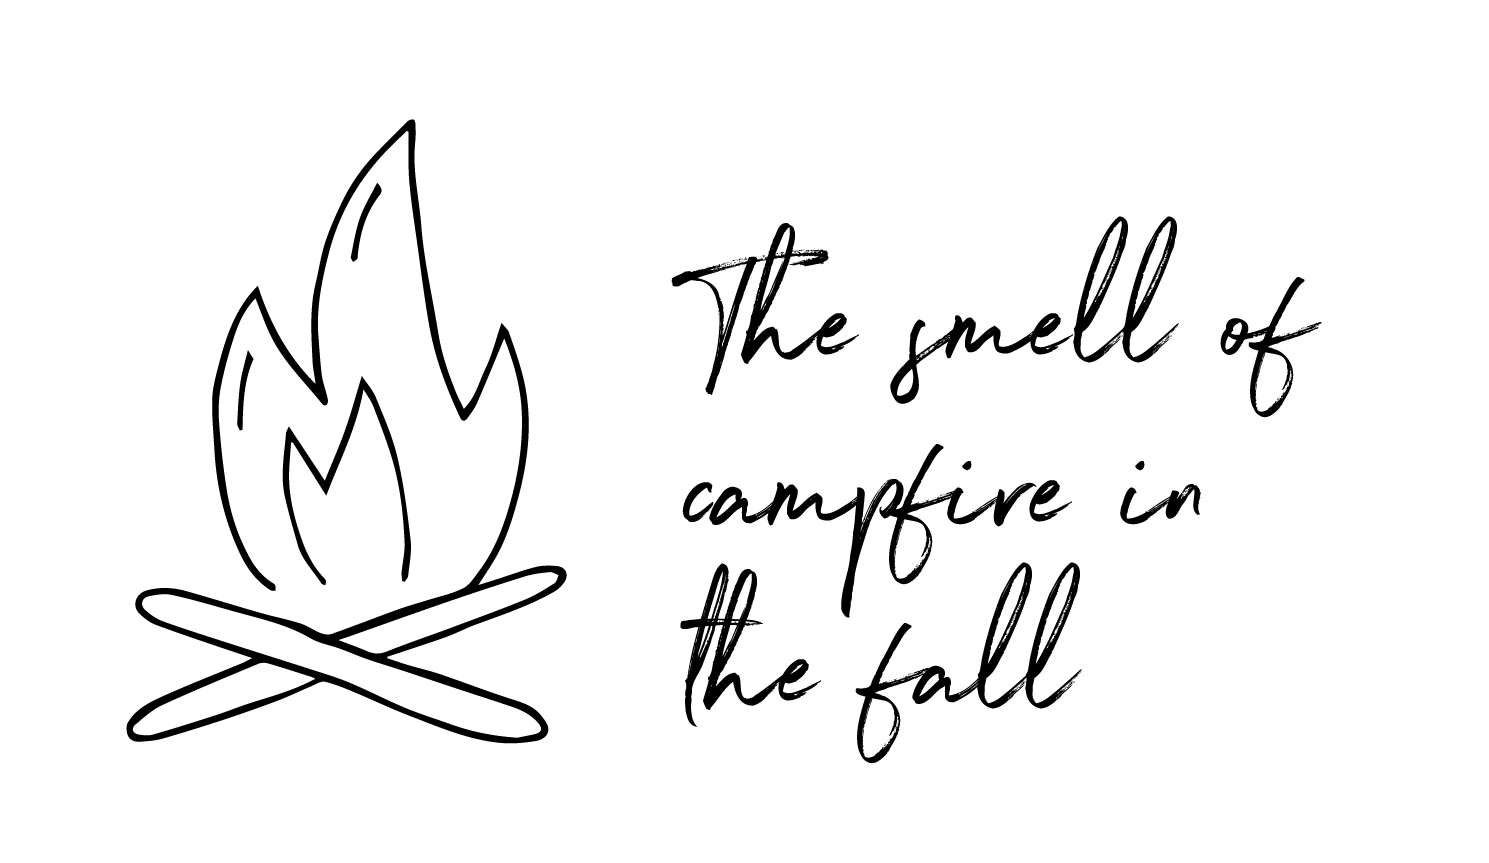 Campfire-07.png